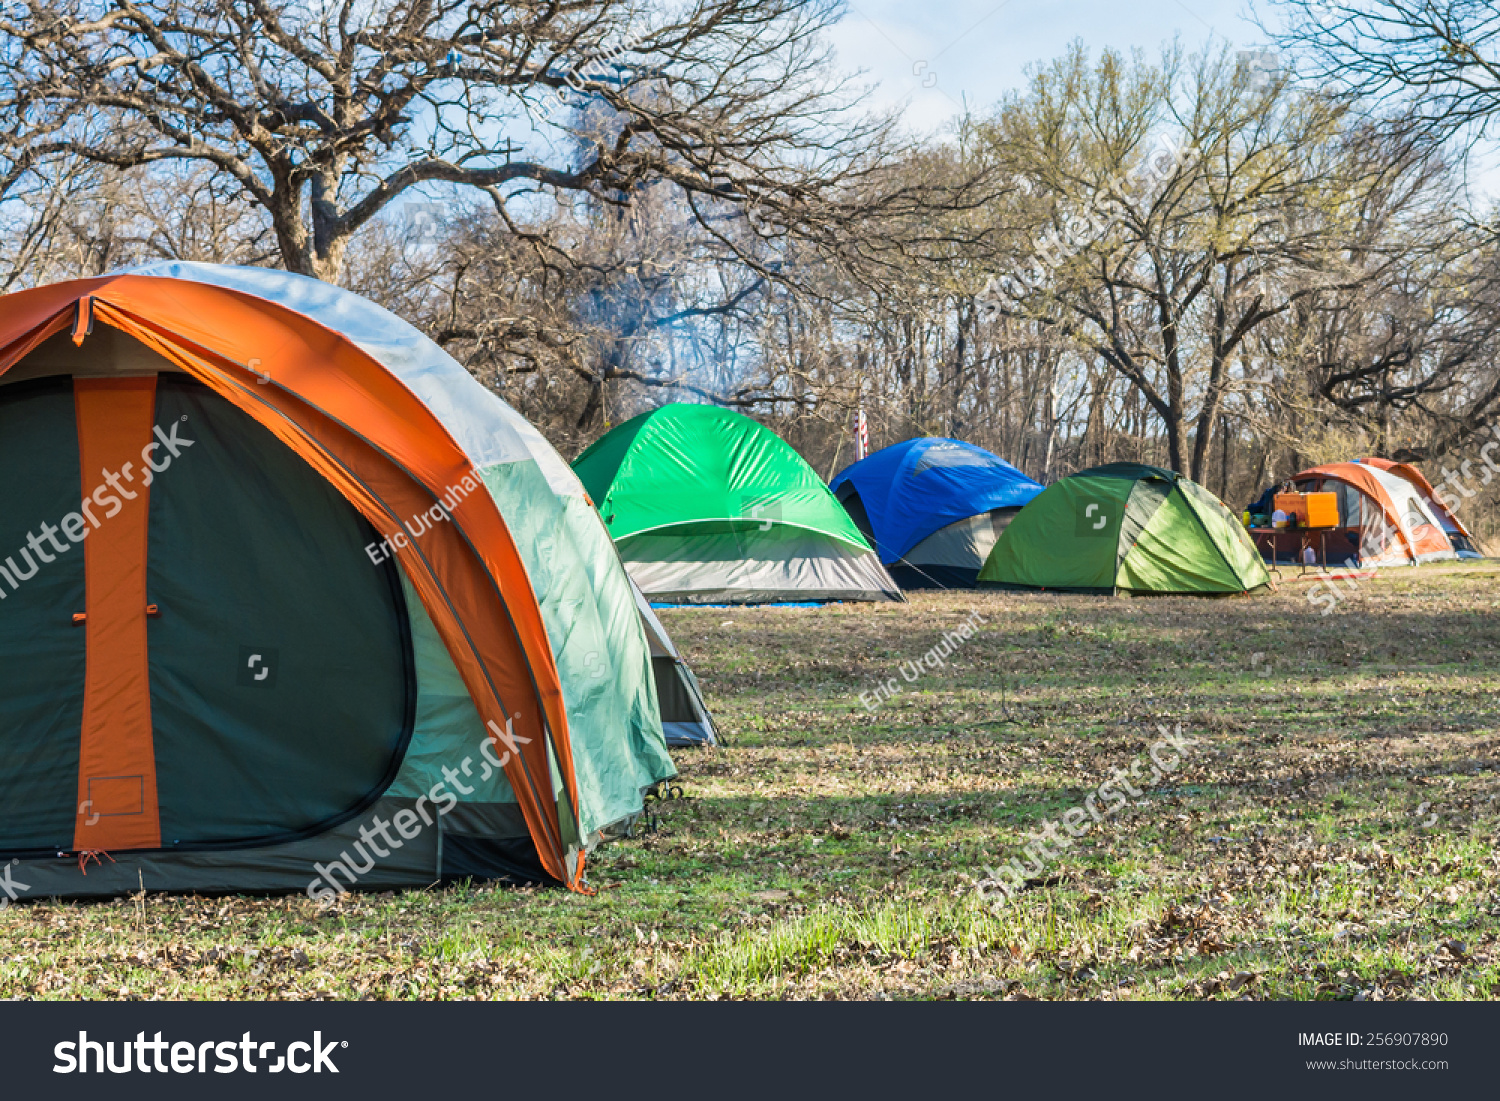 Tents pitched at Dinosaur Valley State Park & Tents Pitched Dinosaur Valley State Park Stock Photo 256907890 ...